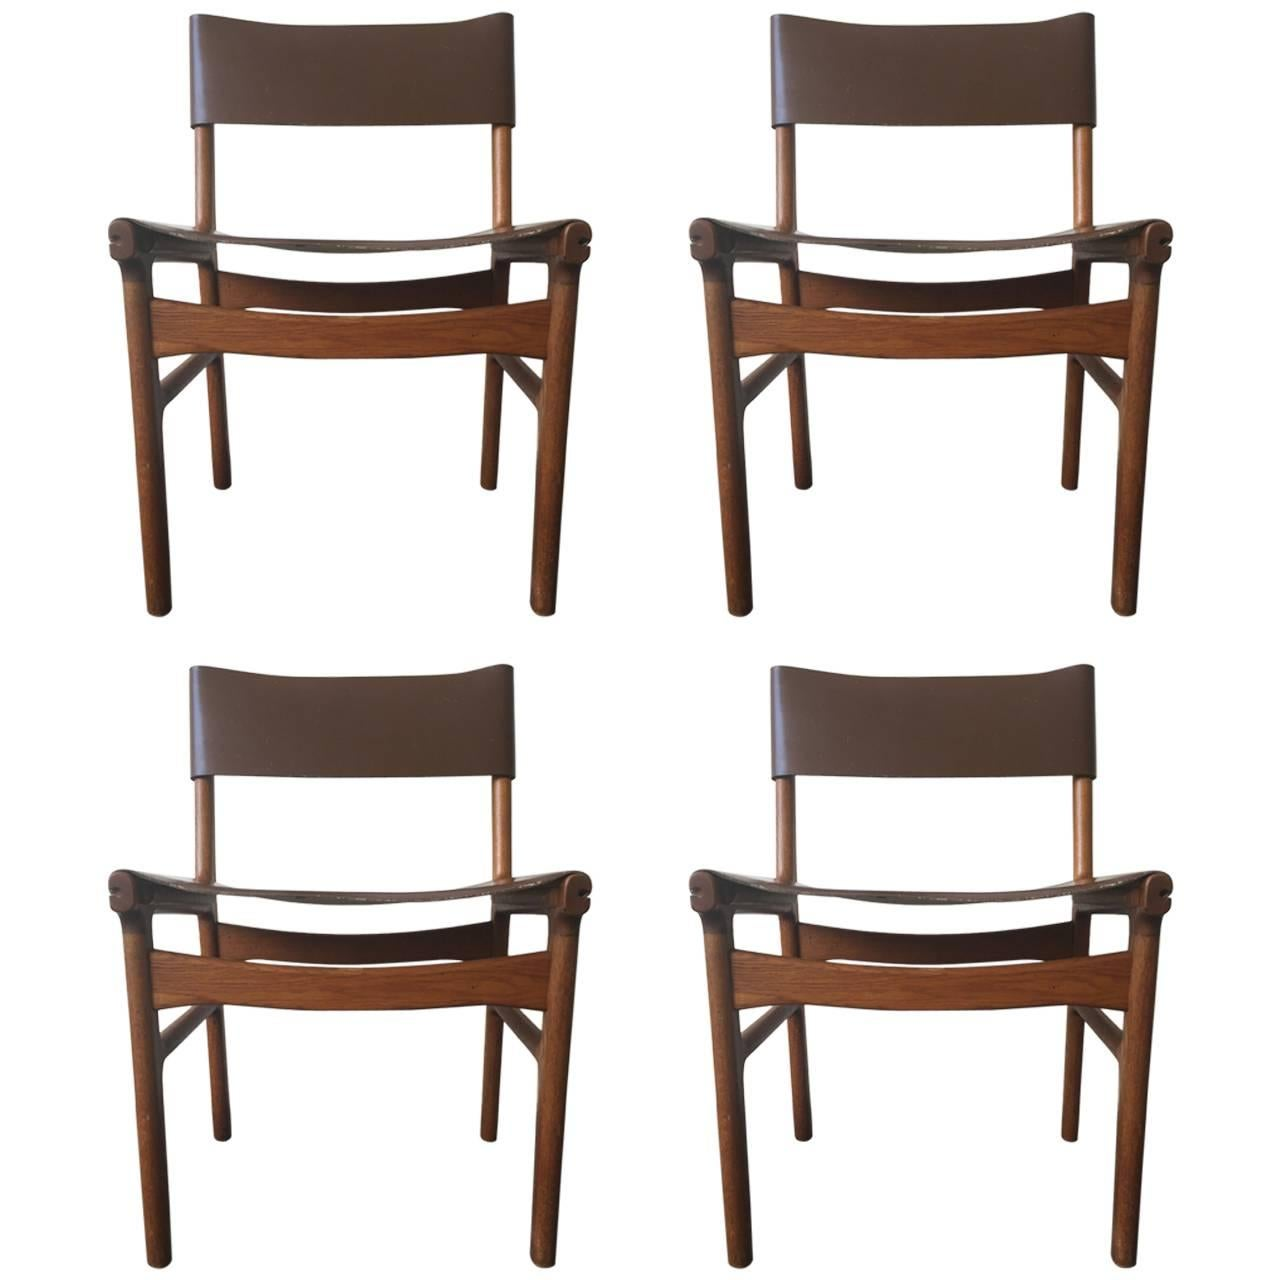 Very Rare Set of Four Dining Chairs by Illum Wikkelsø